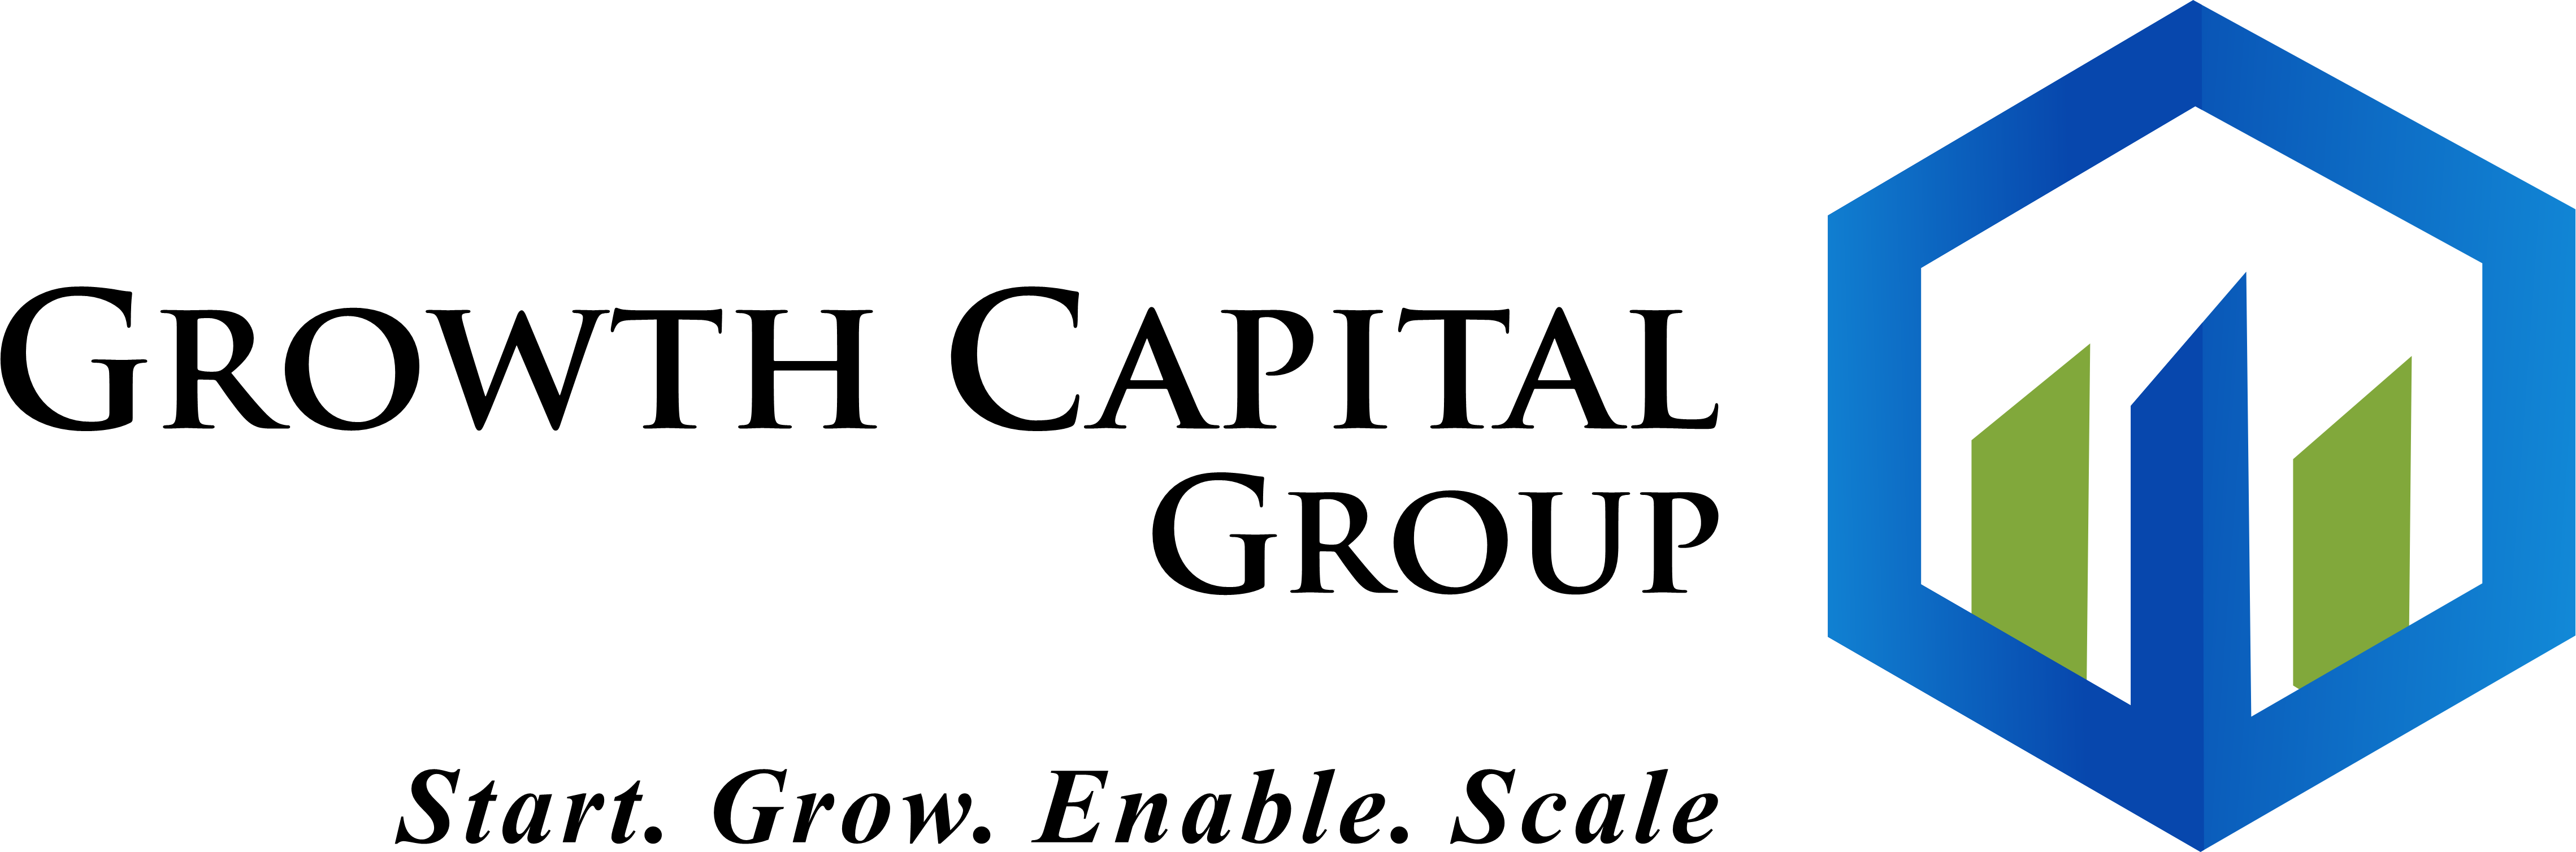 Growth Capital